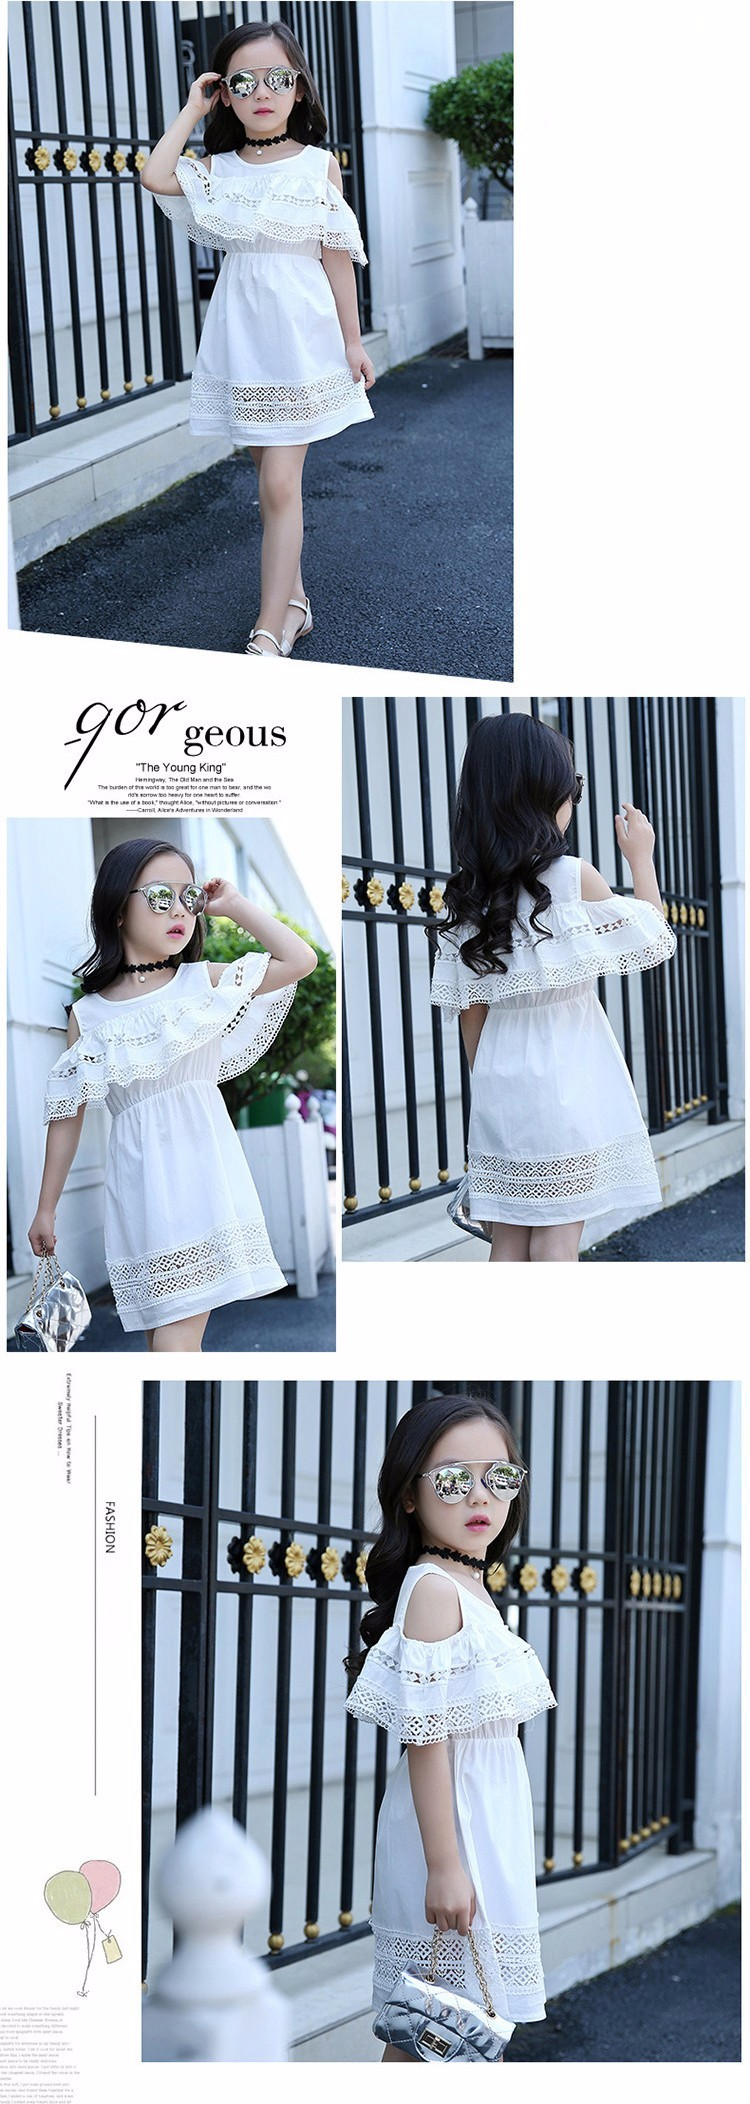 Kids Girls' Dress with Lace Summer 2018 New Kids Clothes for Girls Clothes Cotton Off Shoulder Dress White Pink Yellow Vestido 12